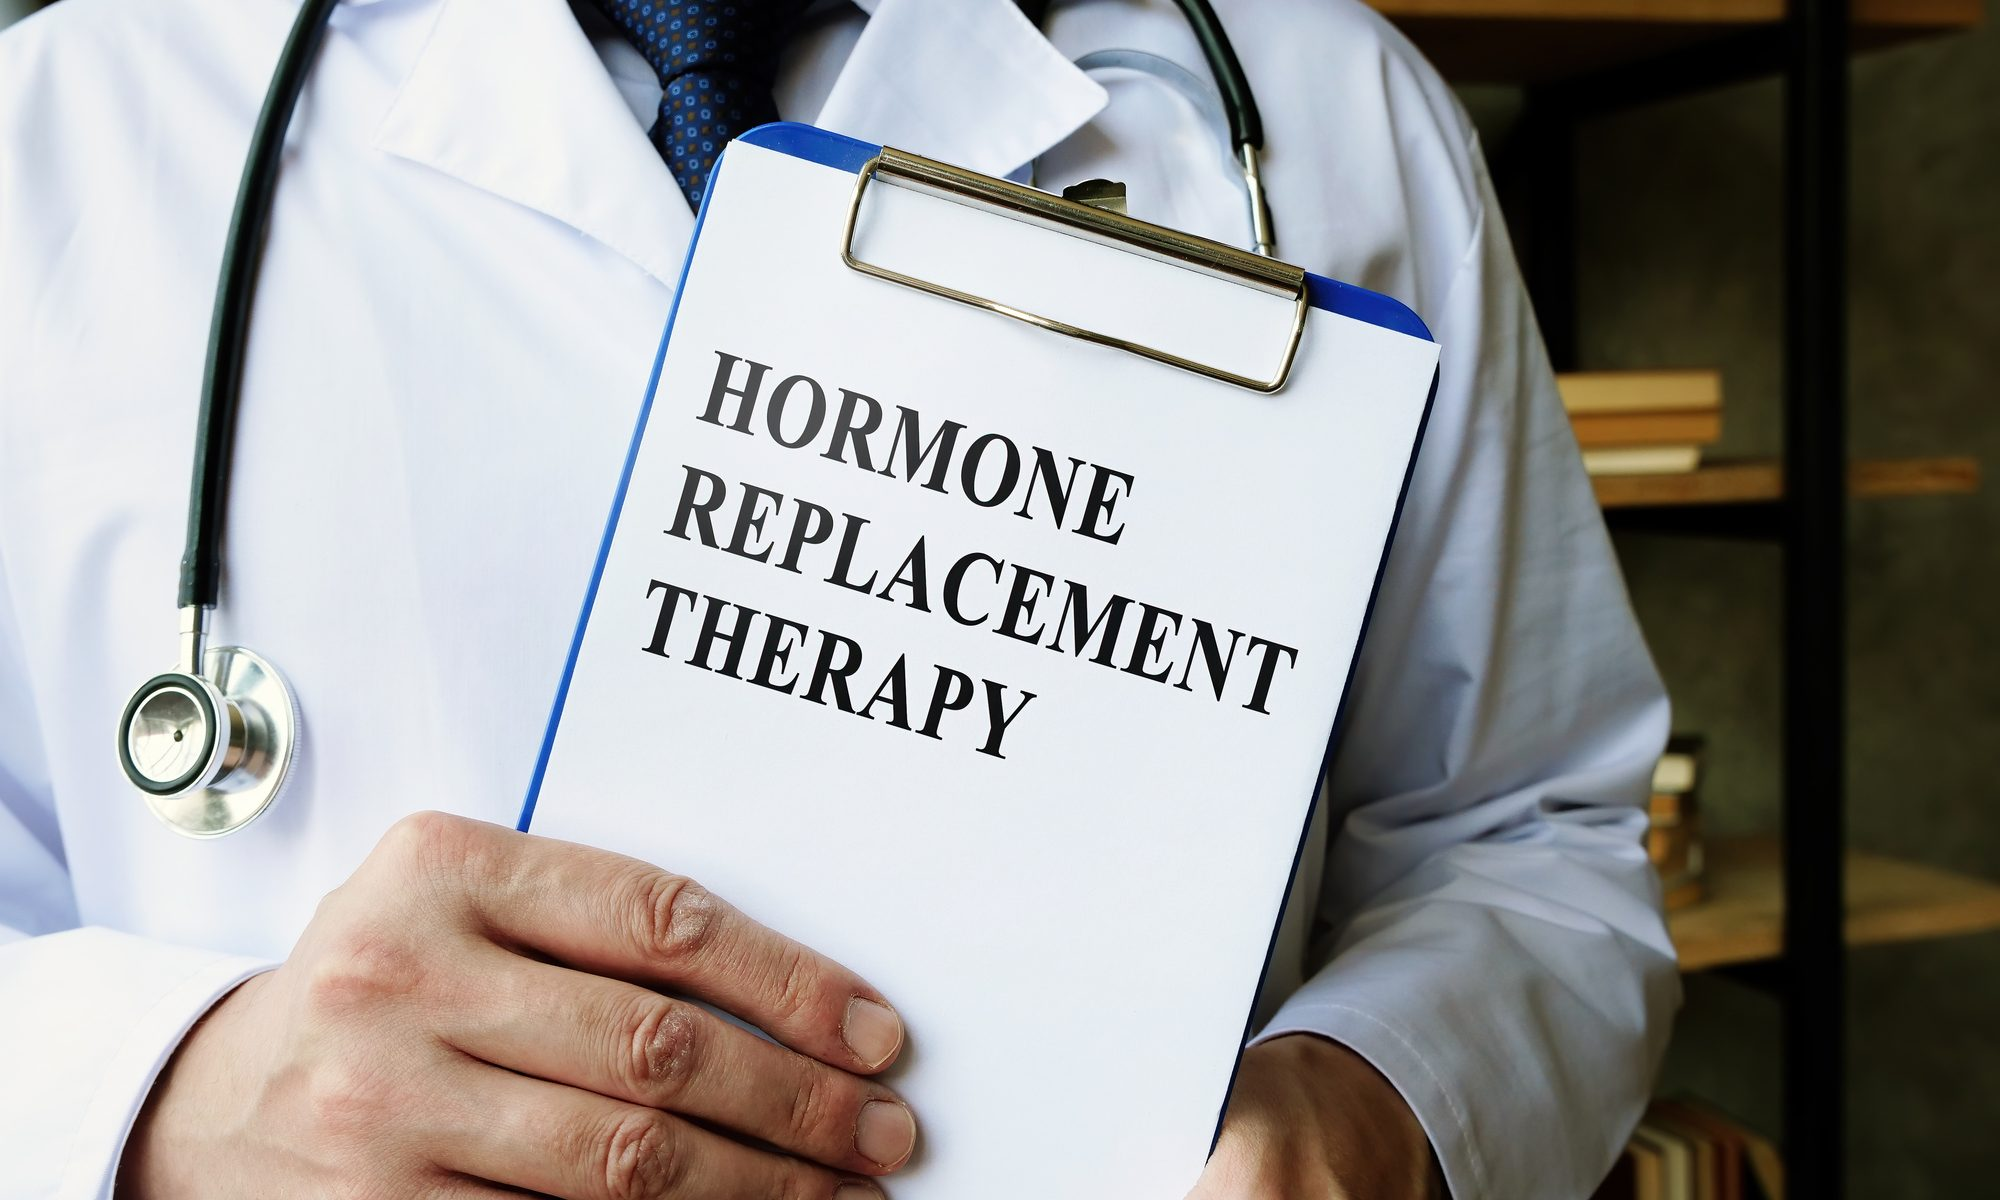 Doctor shows Hormone replacement therapy HRT information.